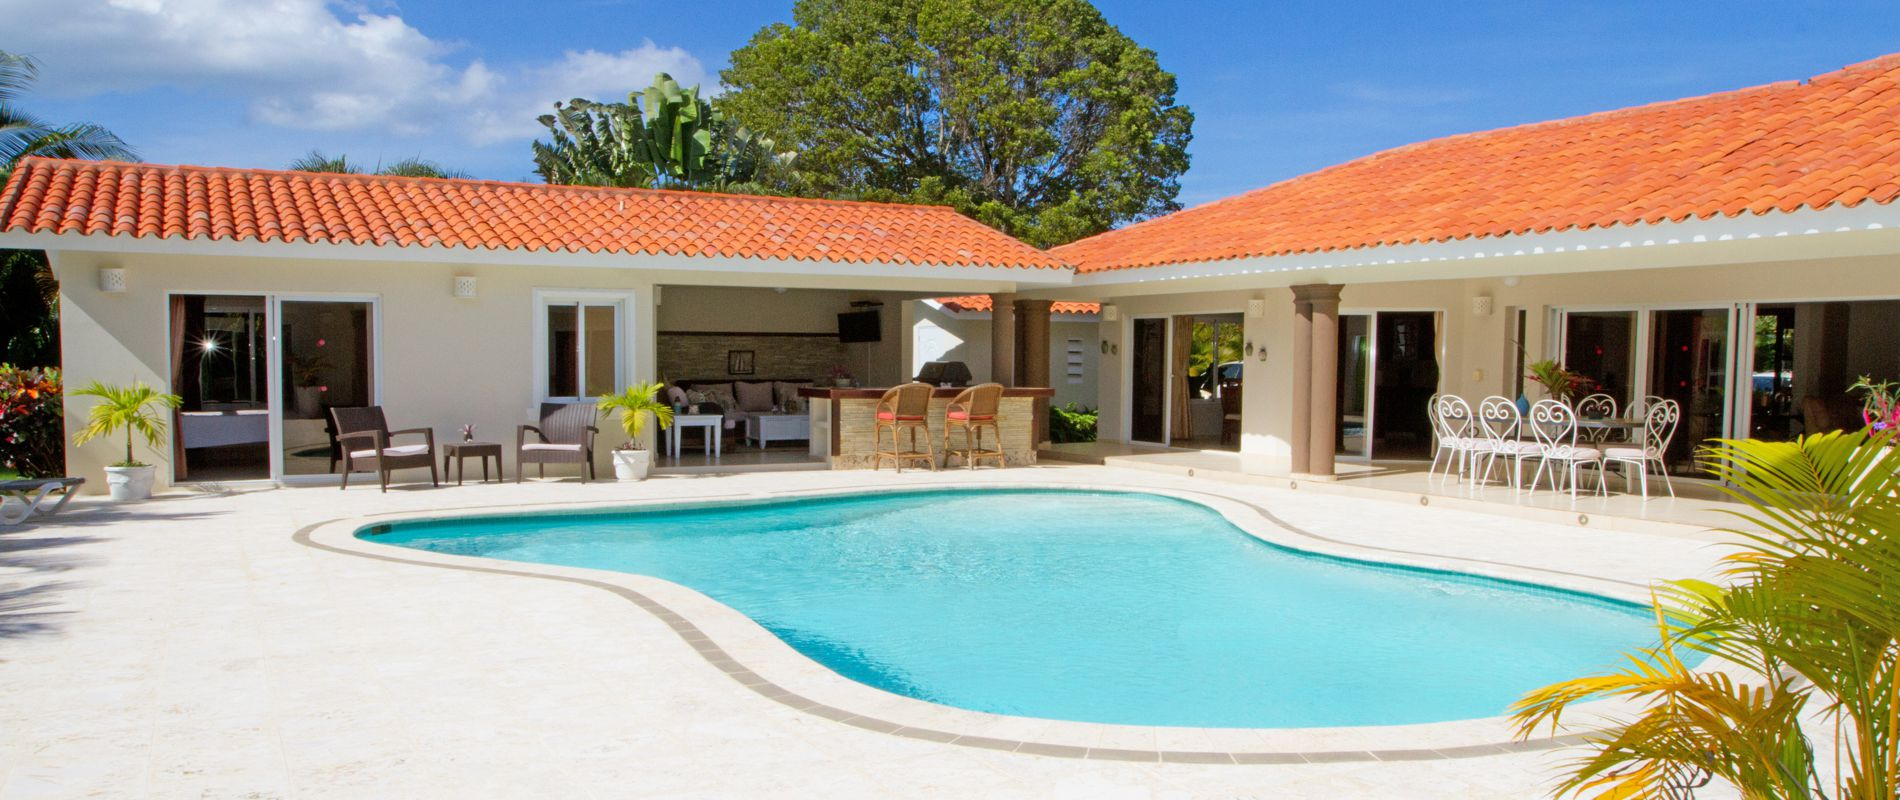 dominican villas for sale